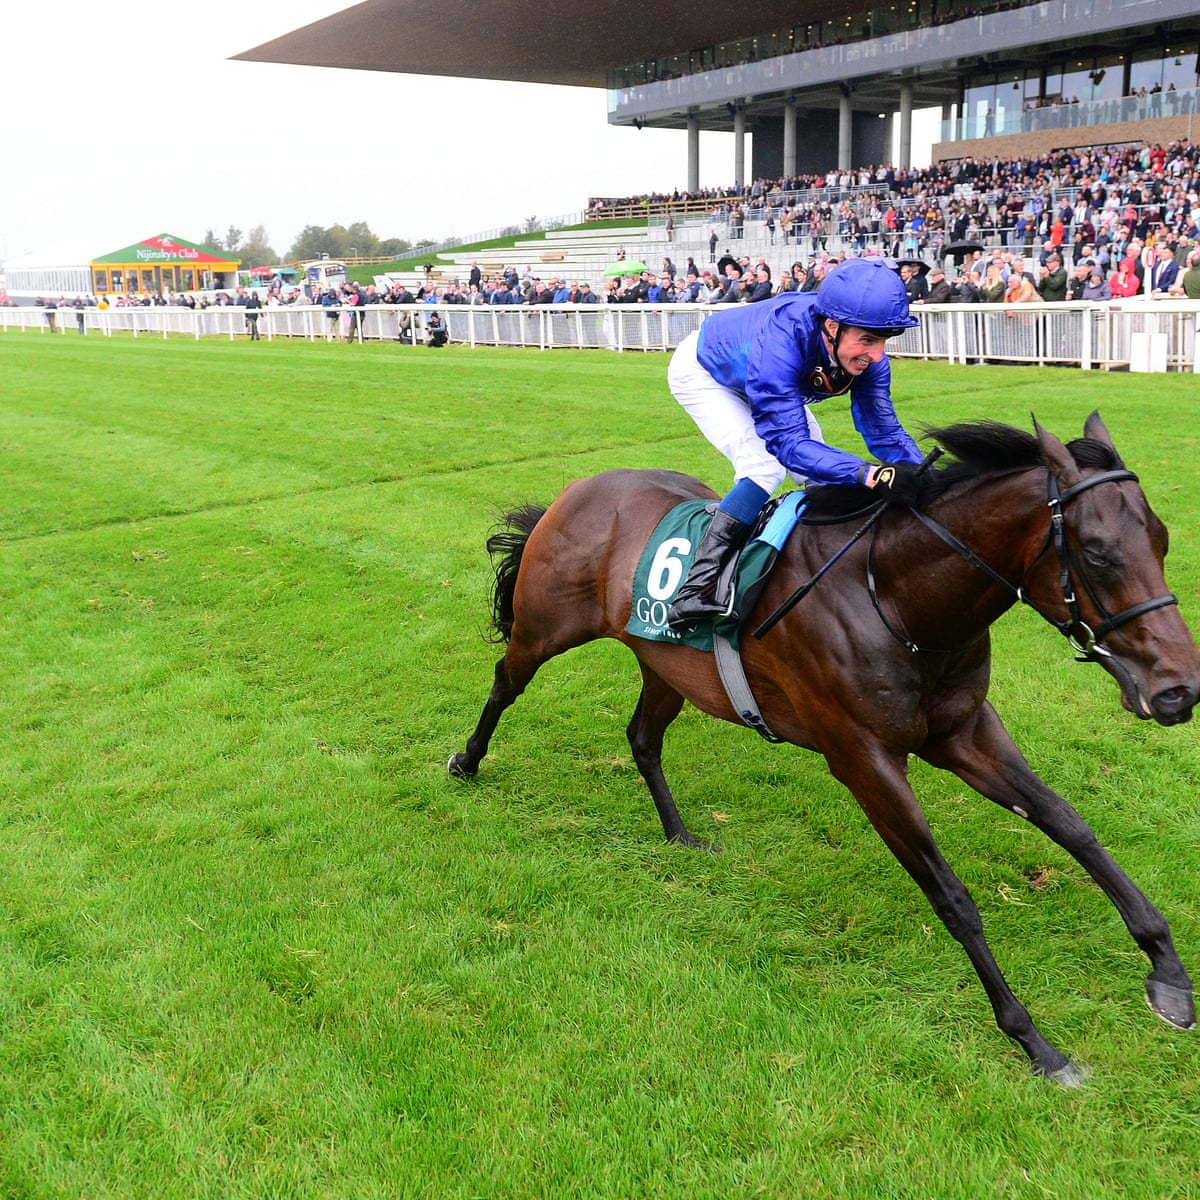 Irish Derby to remain at the Curragh in 2018 - The Irish Times